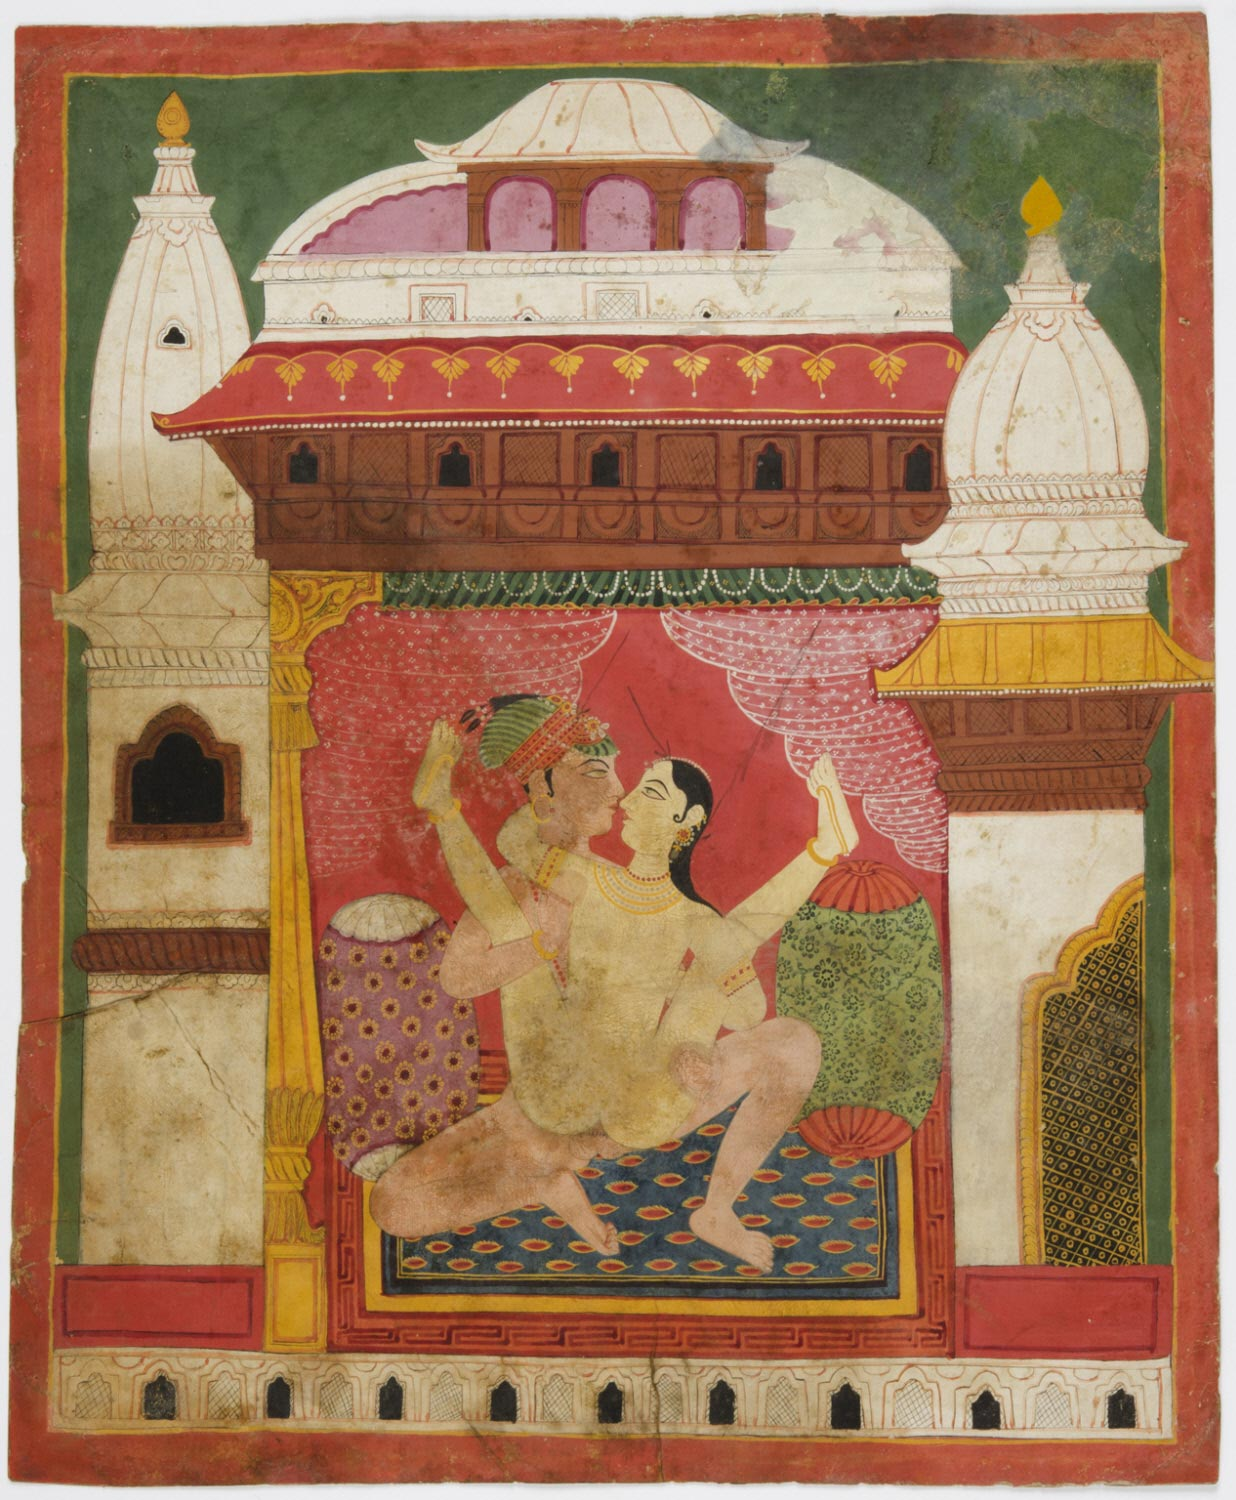 Kumari and King in Lovemaking Position - Nepal (Probably Bhaktapur), Late 18th Century